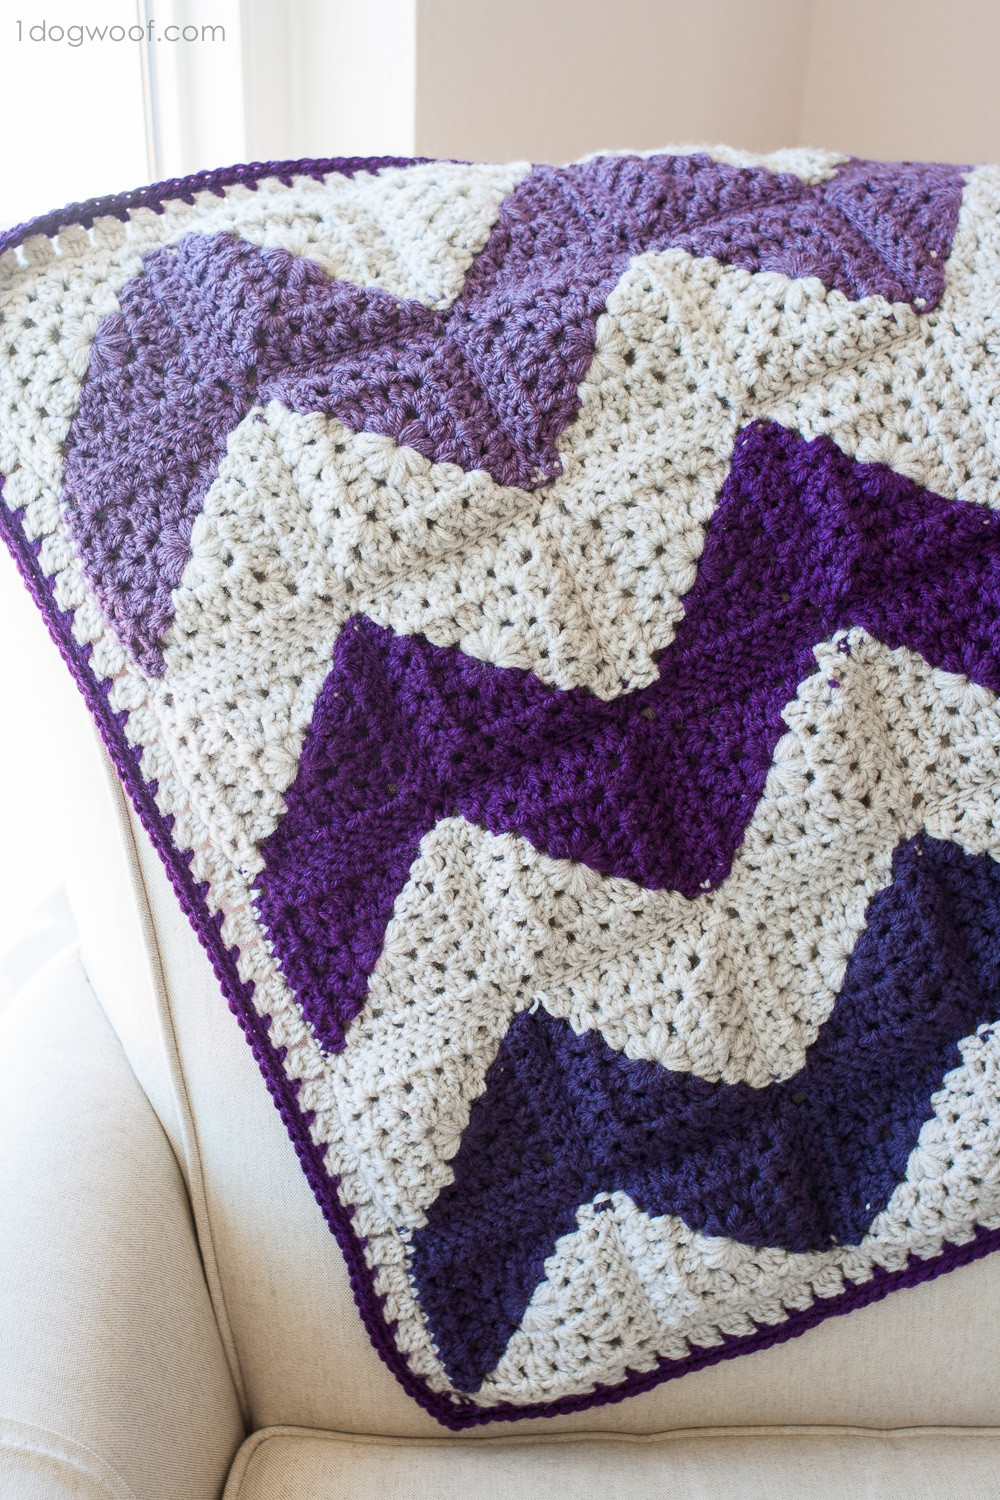 Chevron Crochet Afghan Awesome Granny Squares Chevron Afghan Crochet Pattern E Dog Woof Of Charming 41 Models Chevron Crochet Afghan